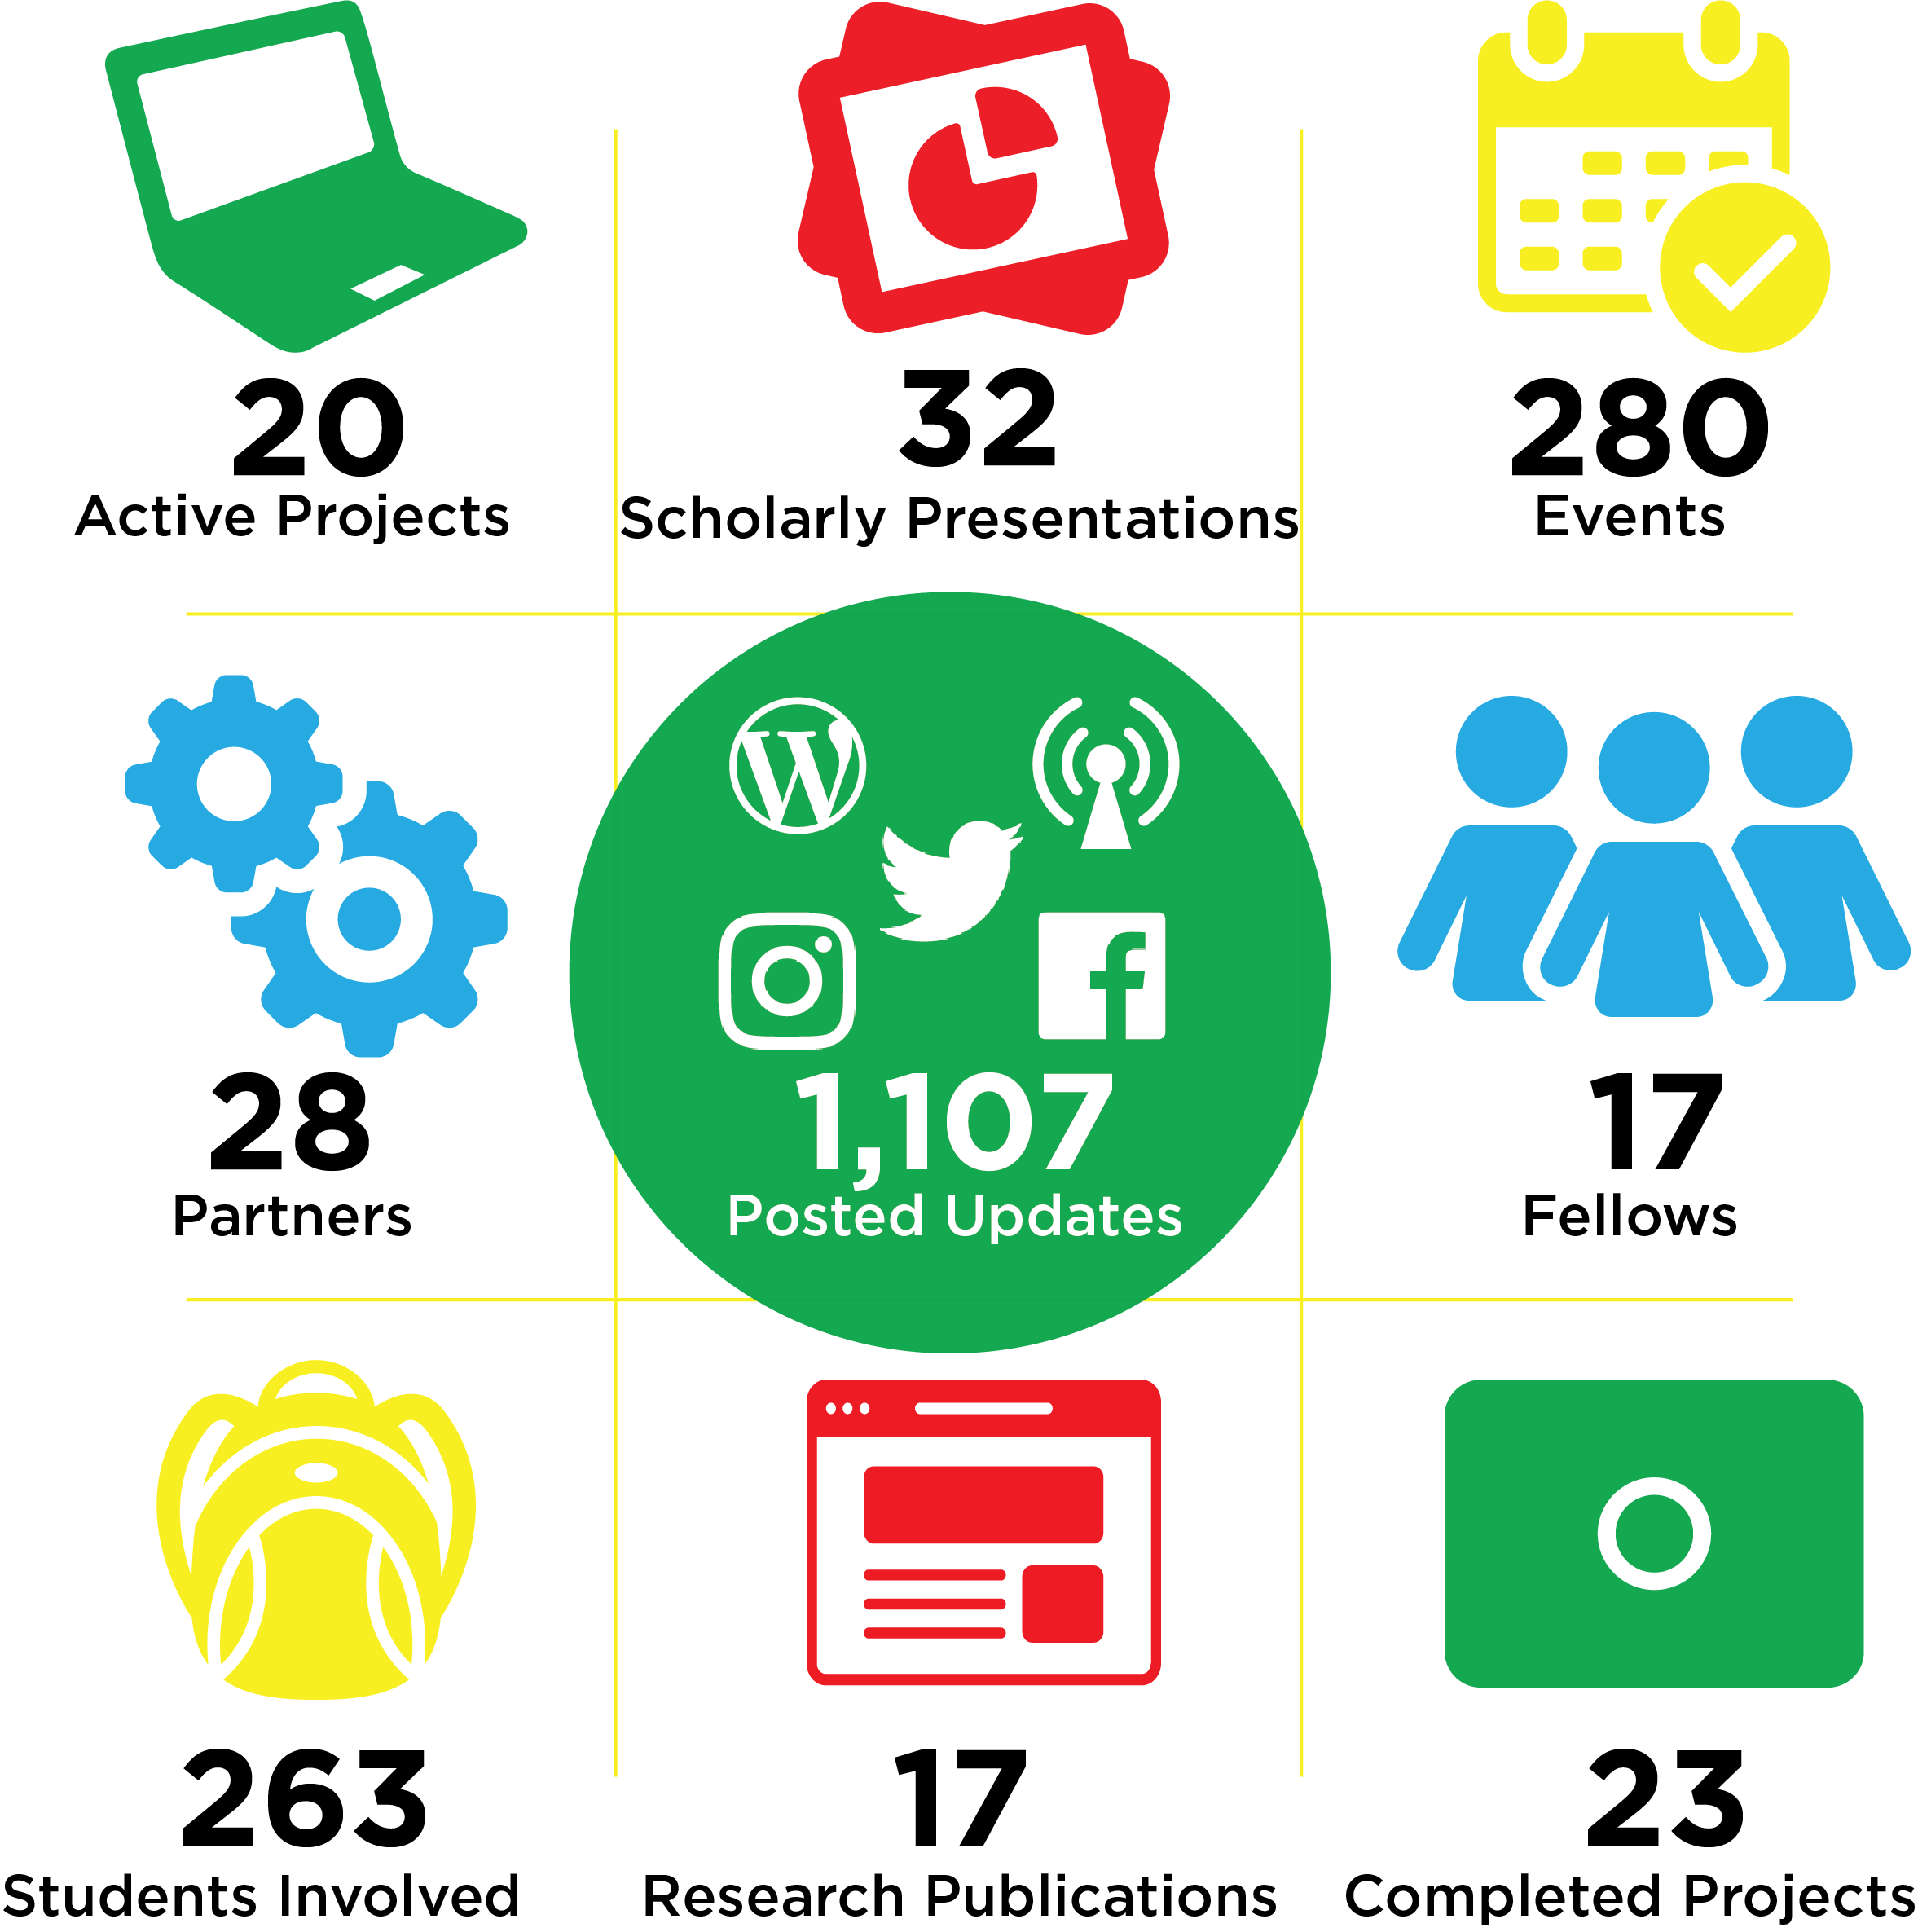 An infographic representing 20 action projects, 32 scholarly presentations, 280 events, 28 partners, 1,107 posted updates, 17 fellows, 263 students involved, 17 recent publications, and 23 completed projects.